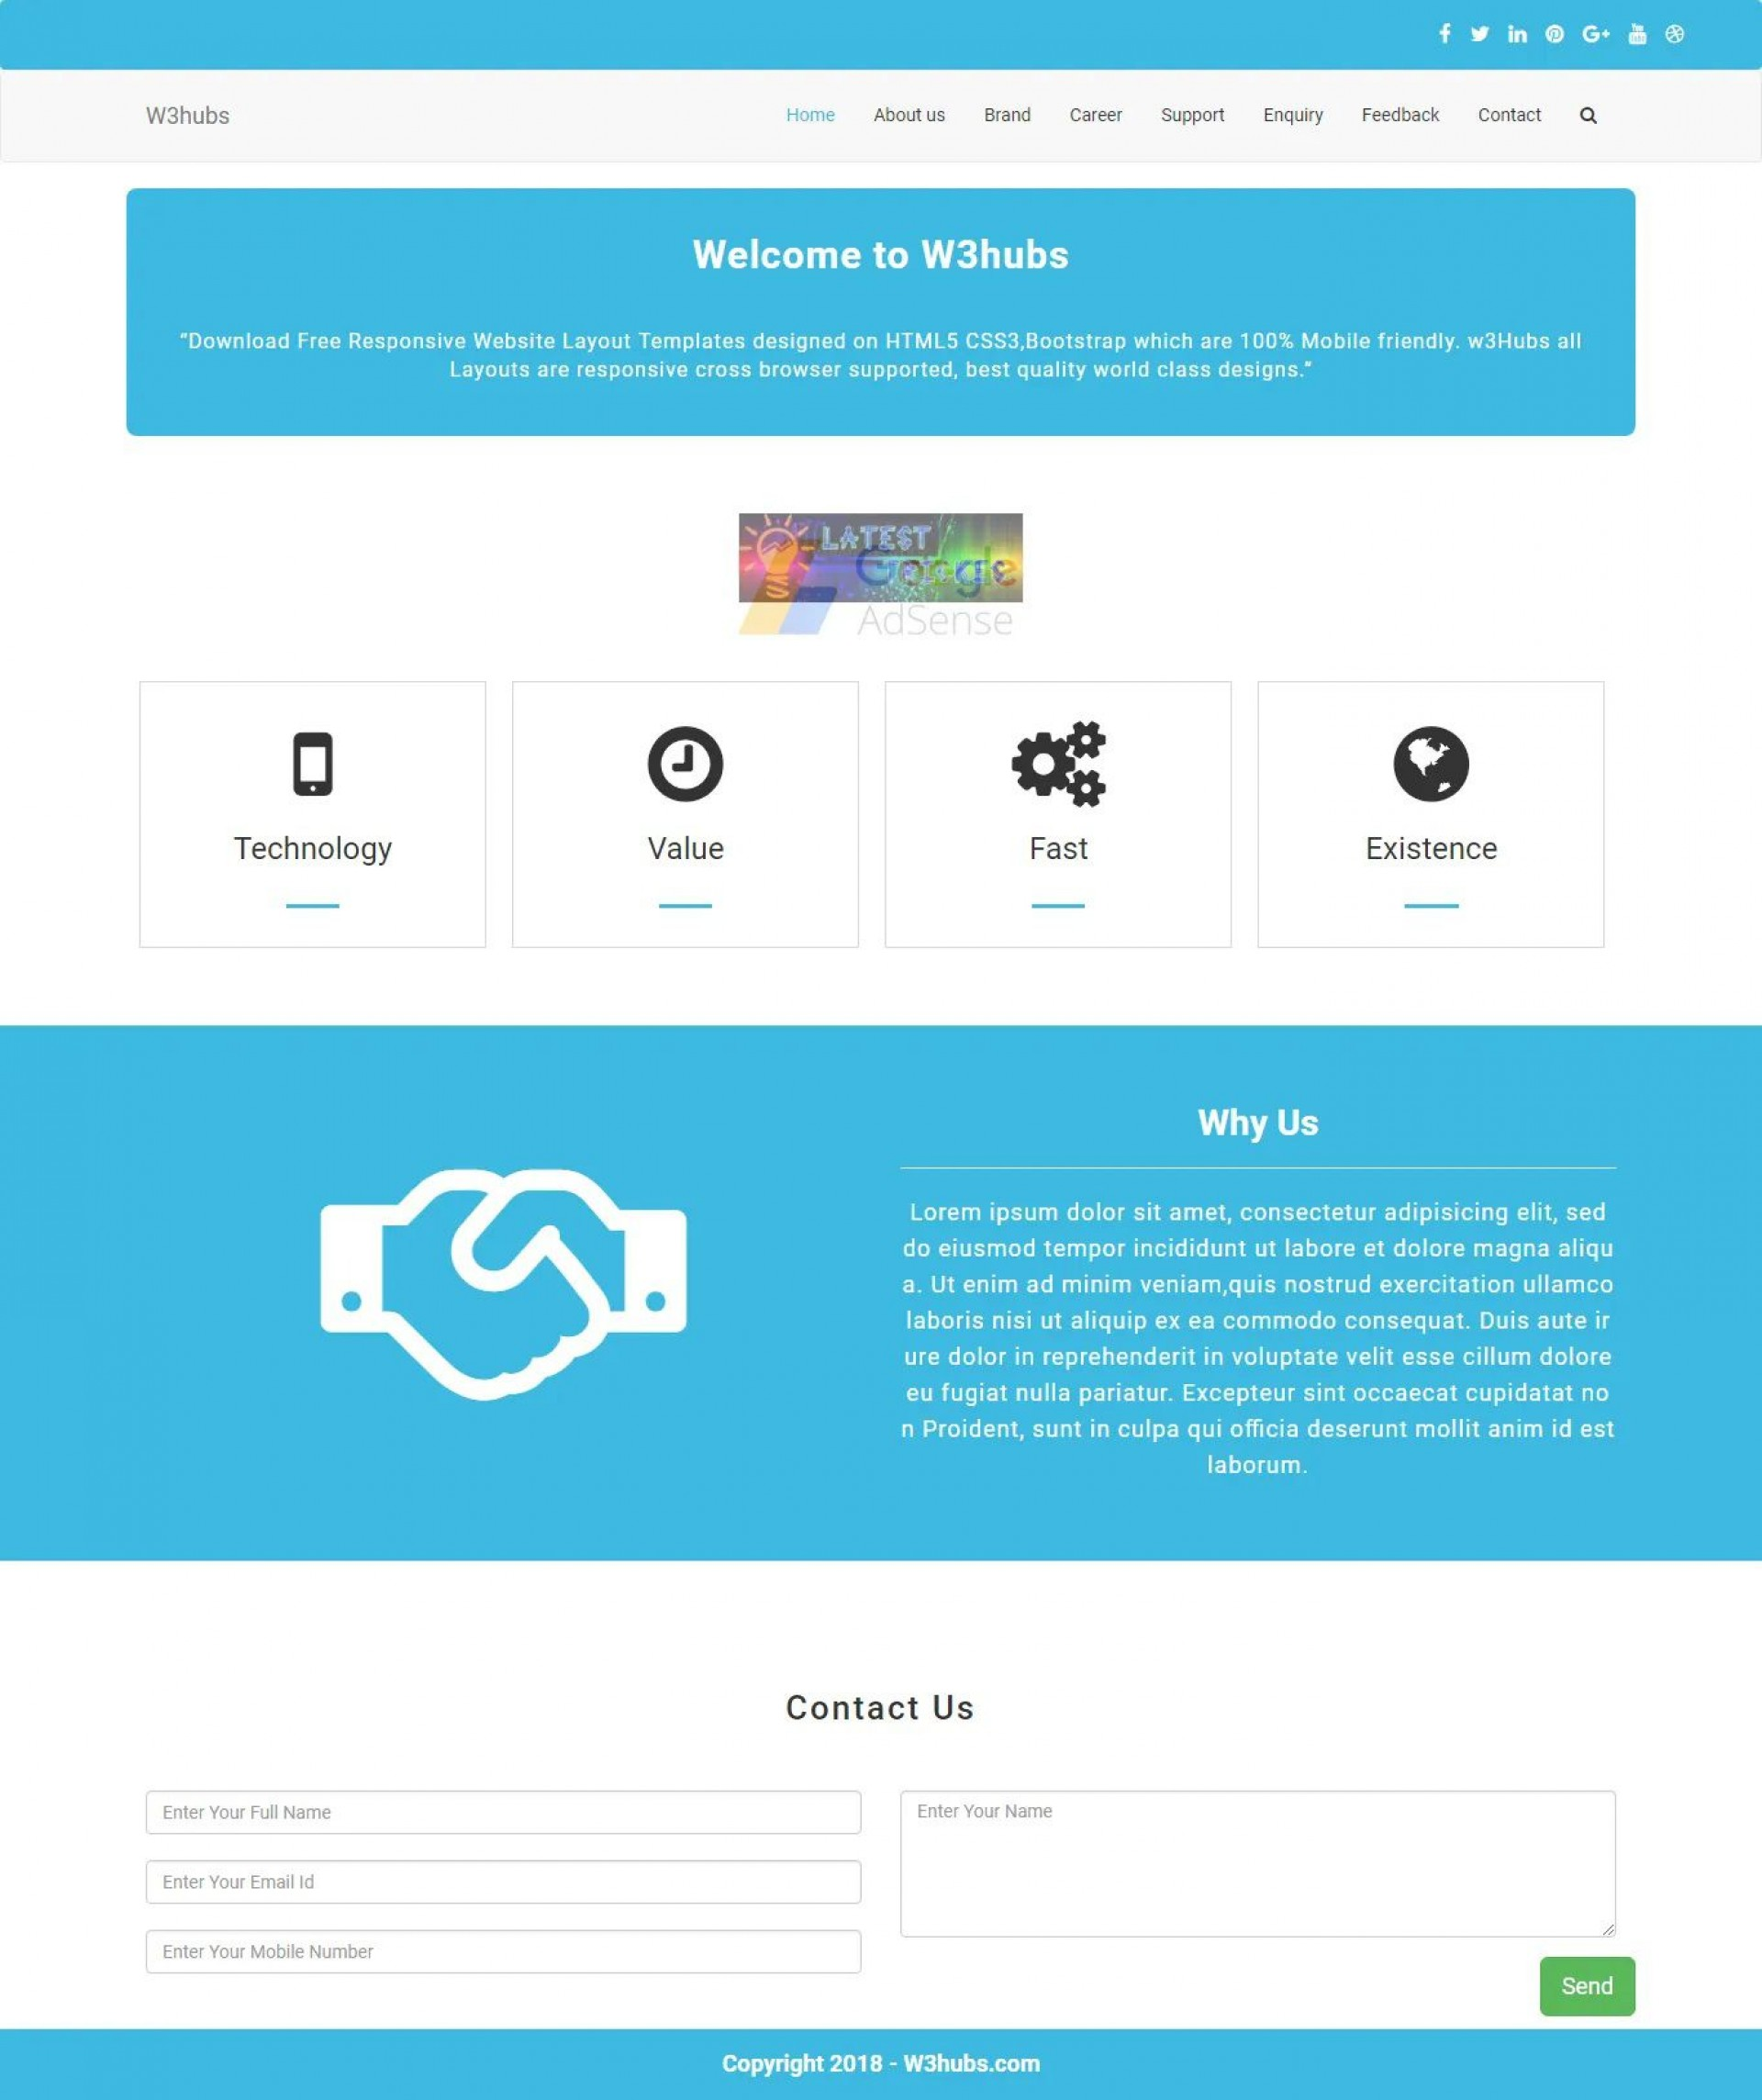 007 Unbelievable Free Php Website Template Photo  With Admin Panel Download Source Code And Database Cm1920